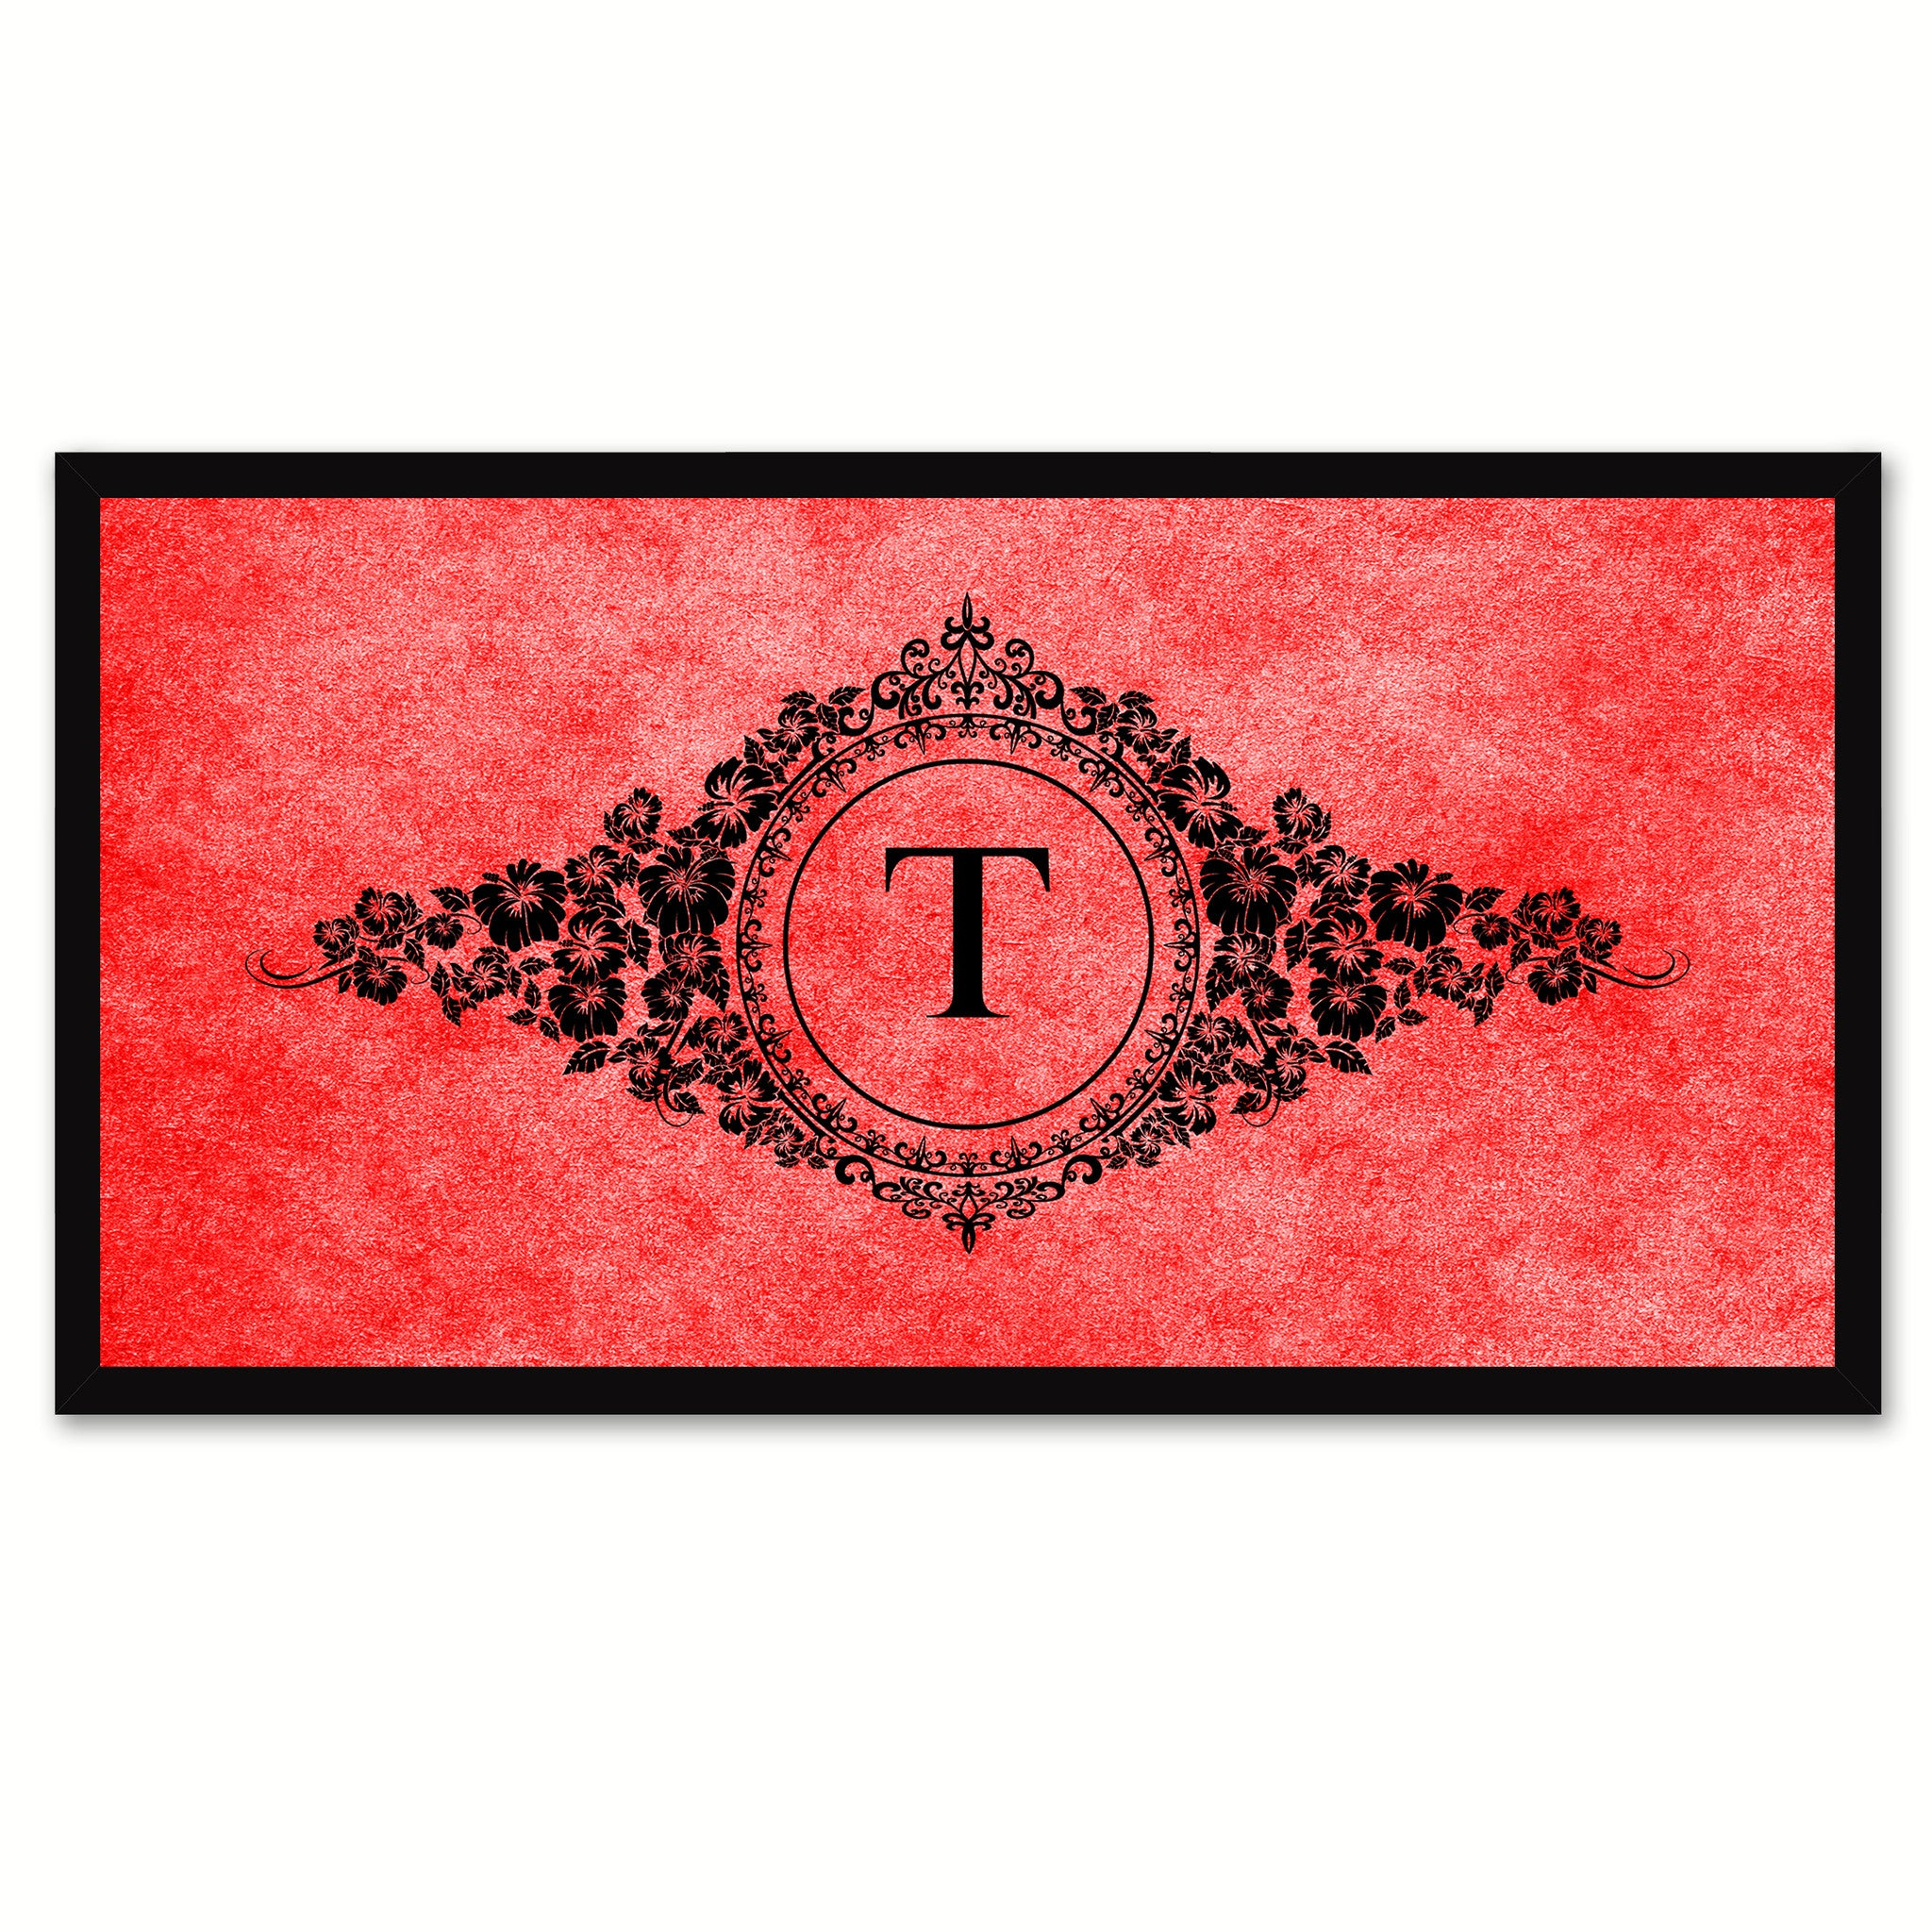 Alphabet Letter T Red Canvas Print, Black Custom Frame